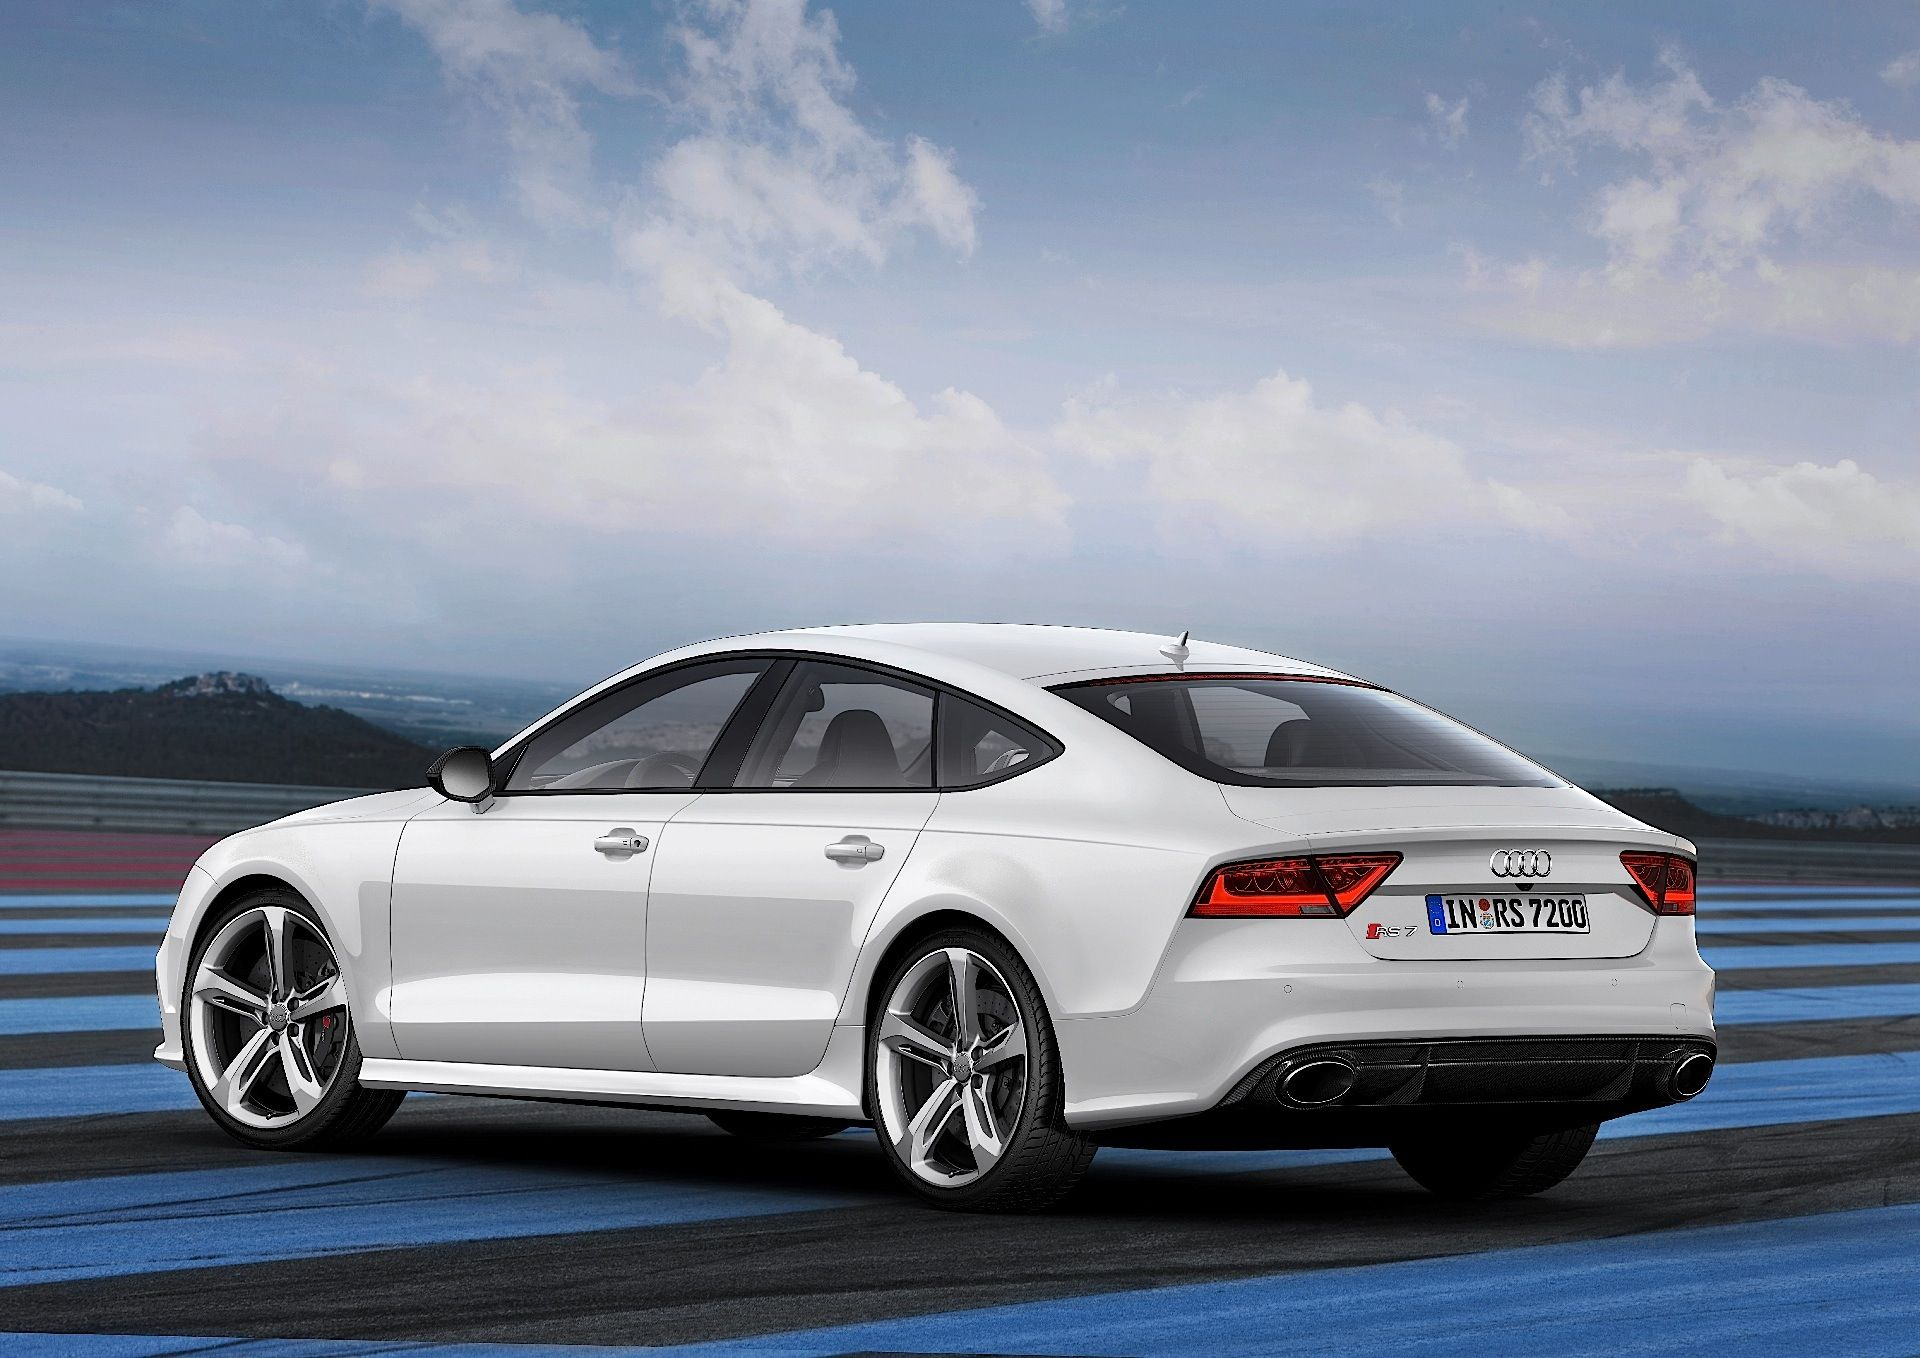 rs7 Google Search Cars Pinterest